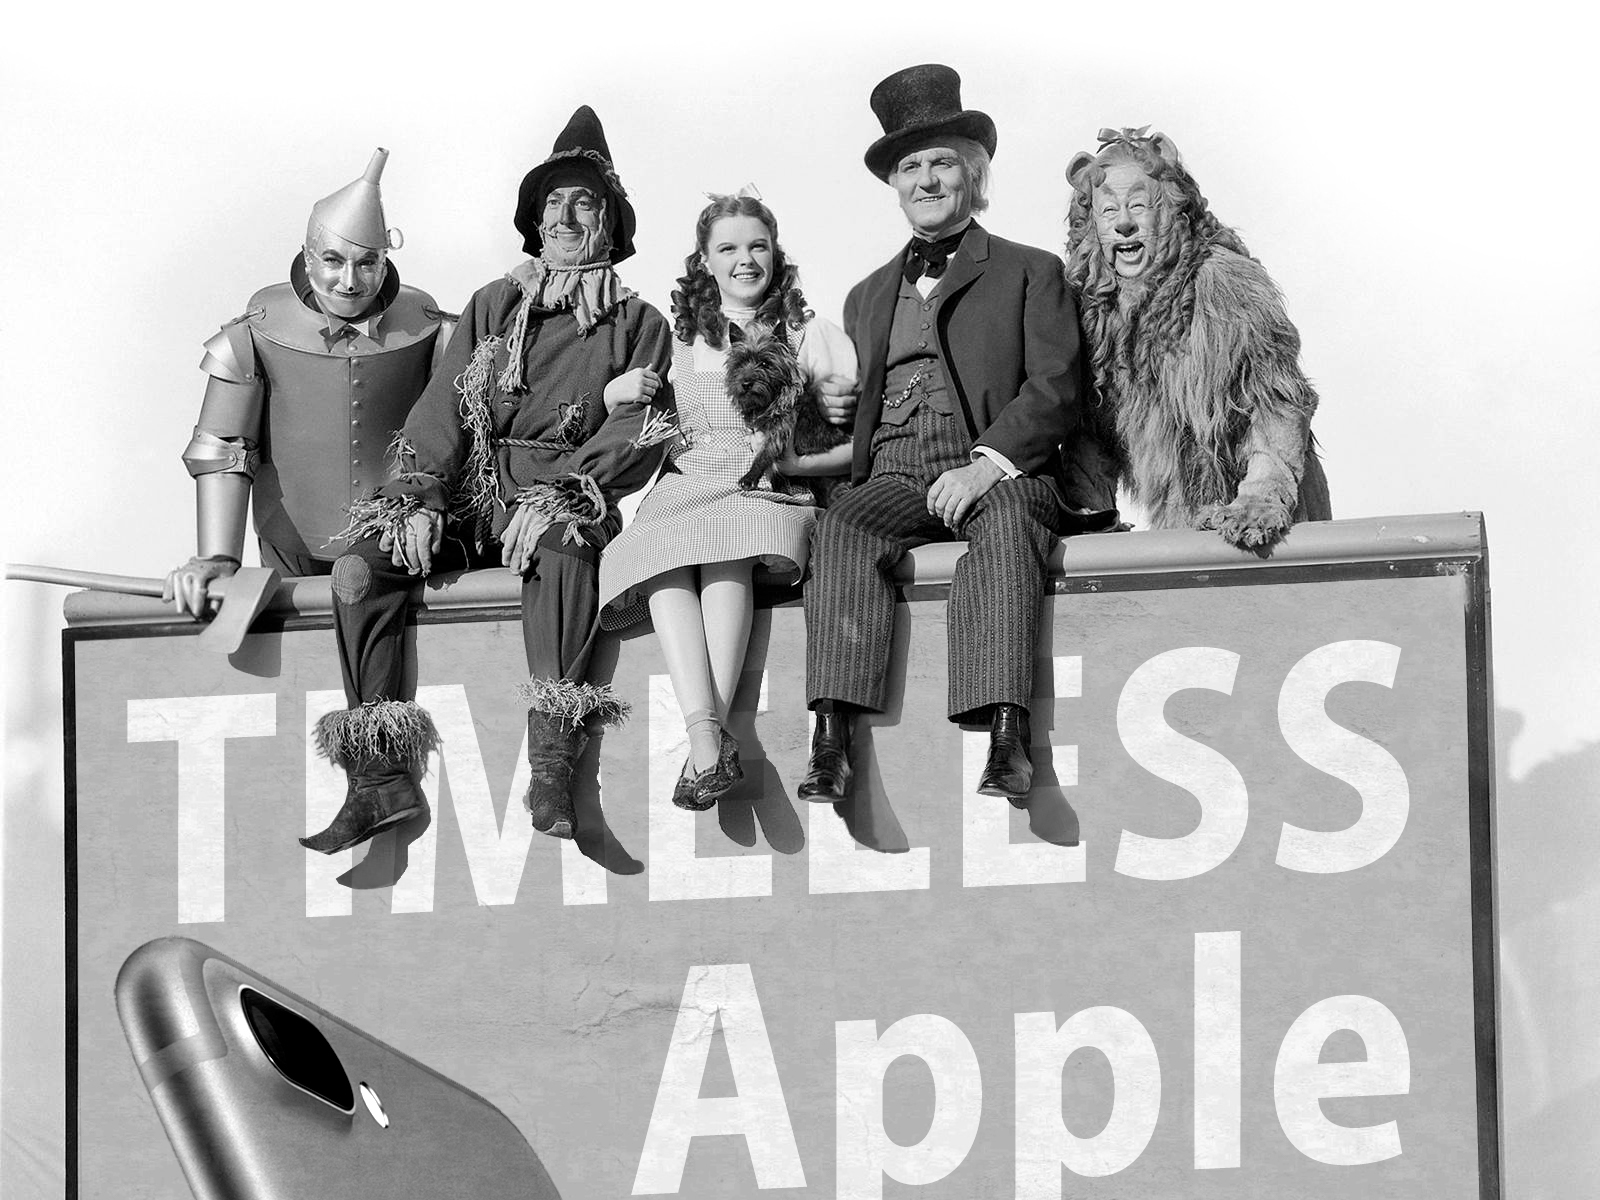 Timeless Apple - El Mago de Oz